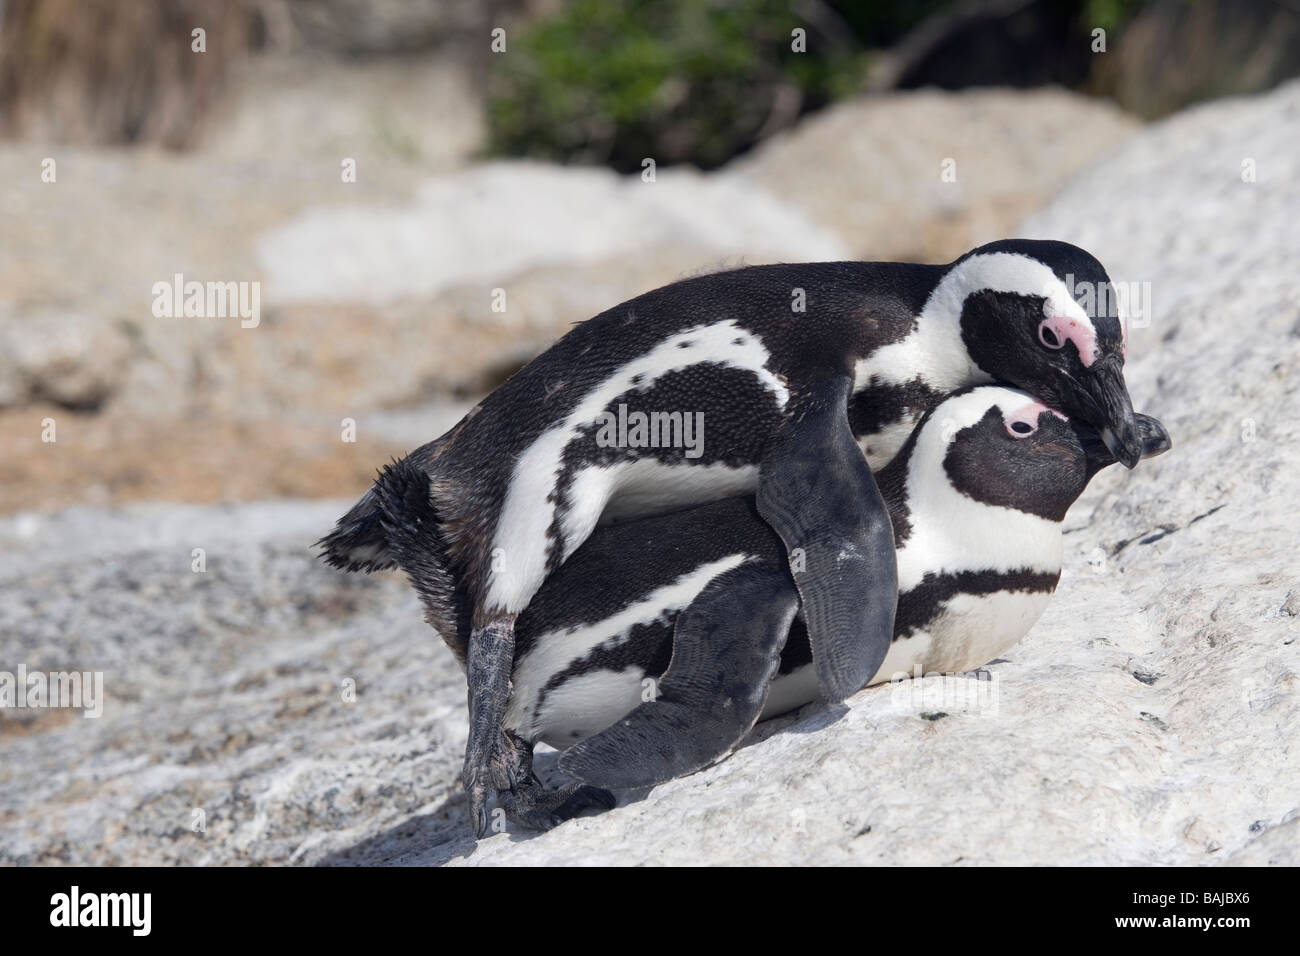 African Penguin Spheniscus demersus mating at Boulder Beach Simon's Town South Africa - Stock Image